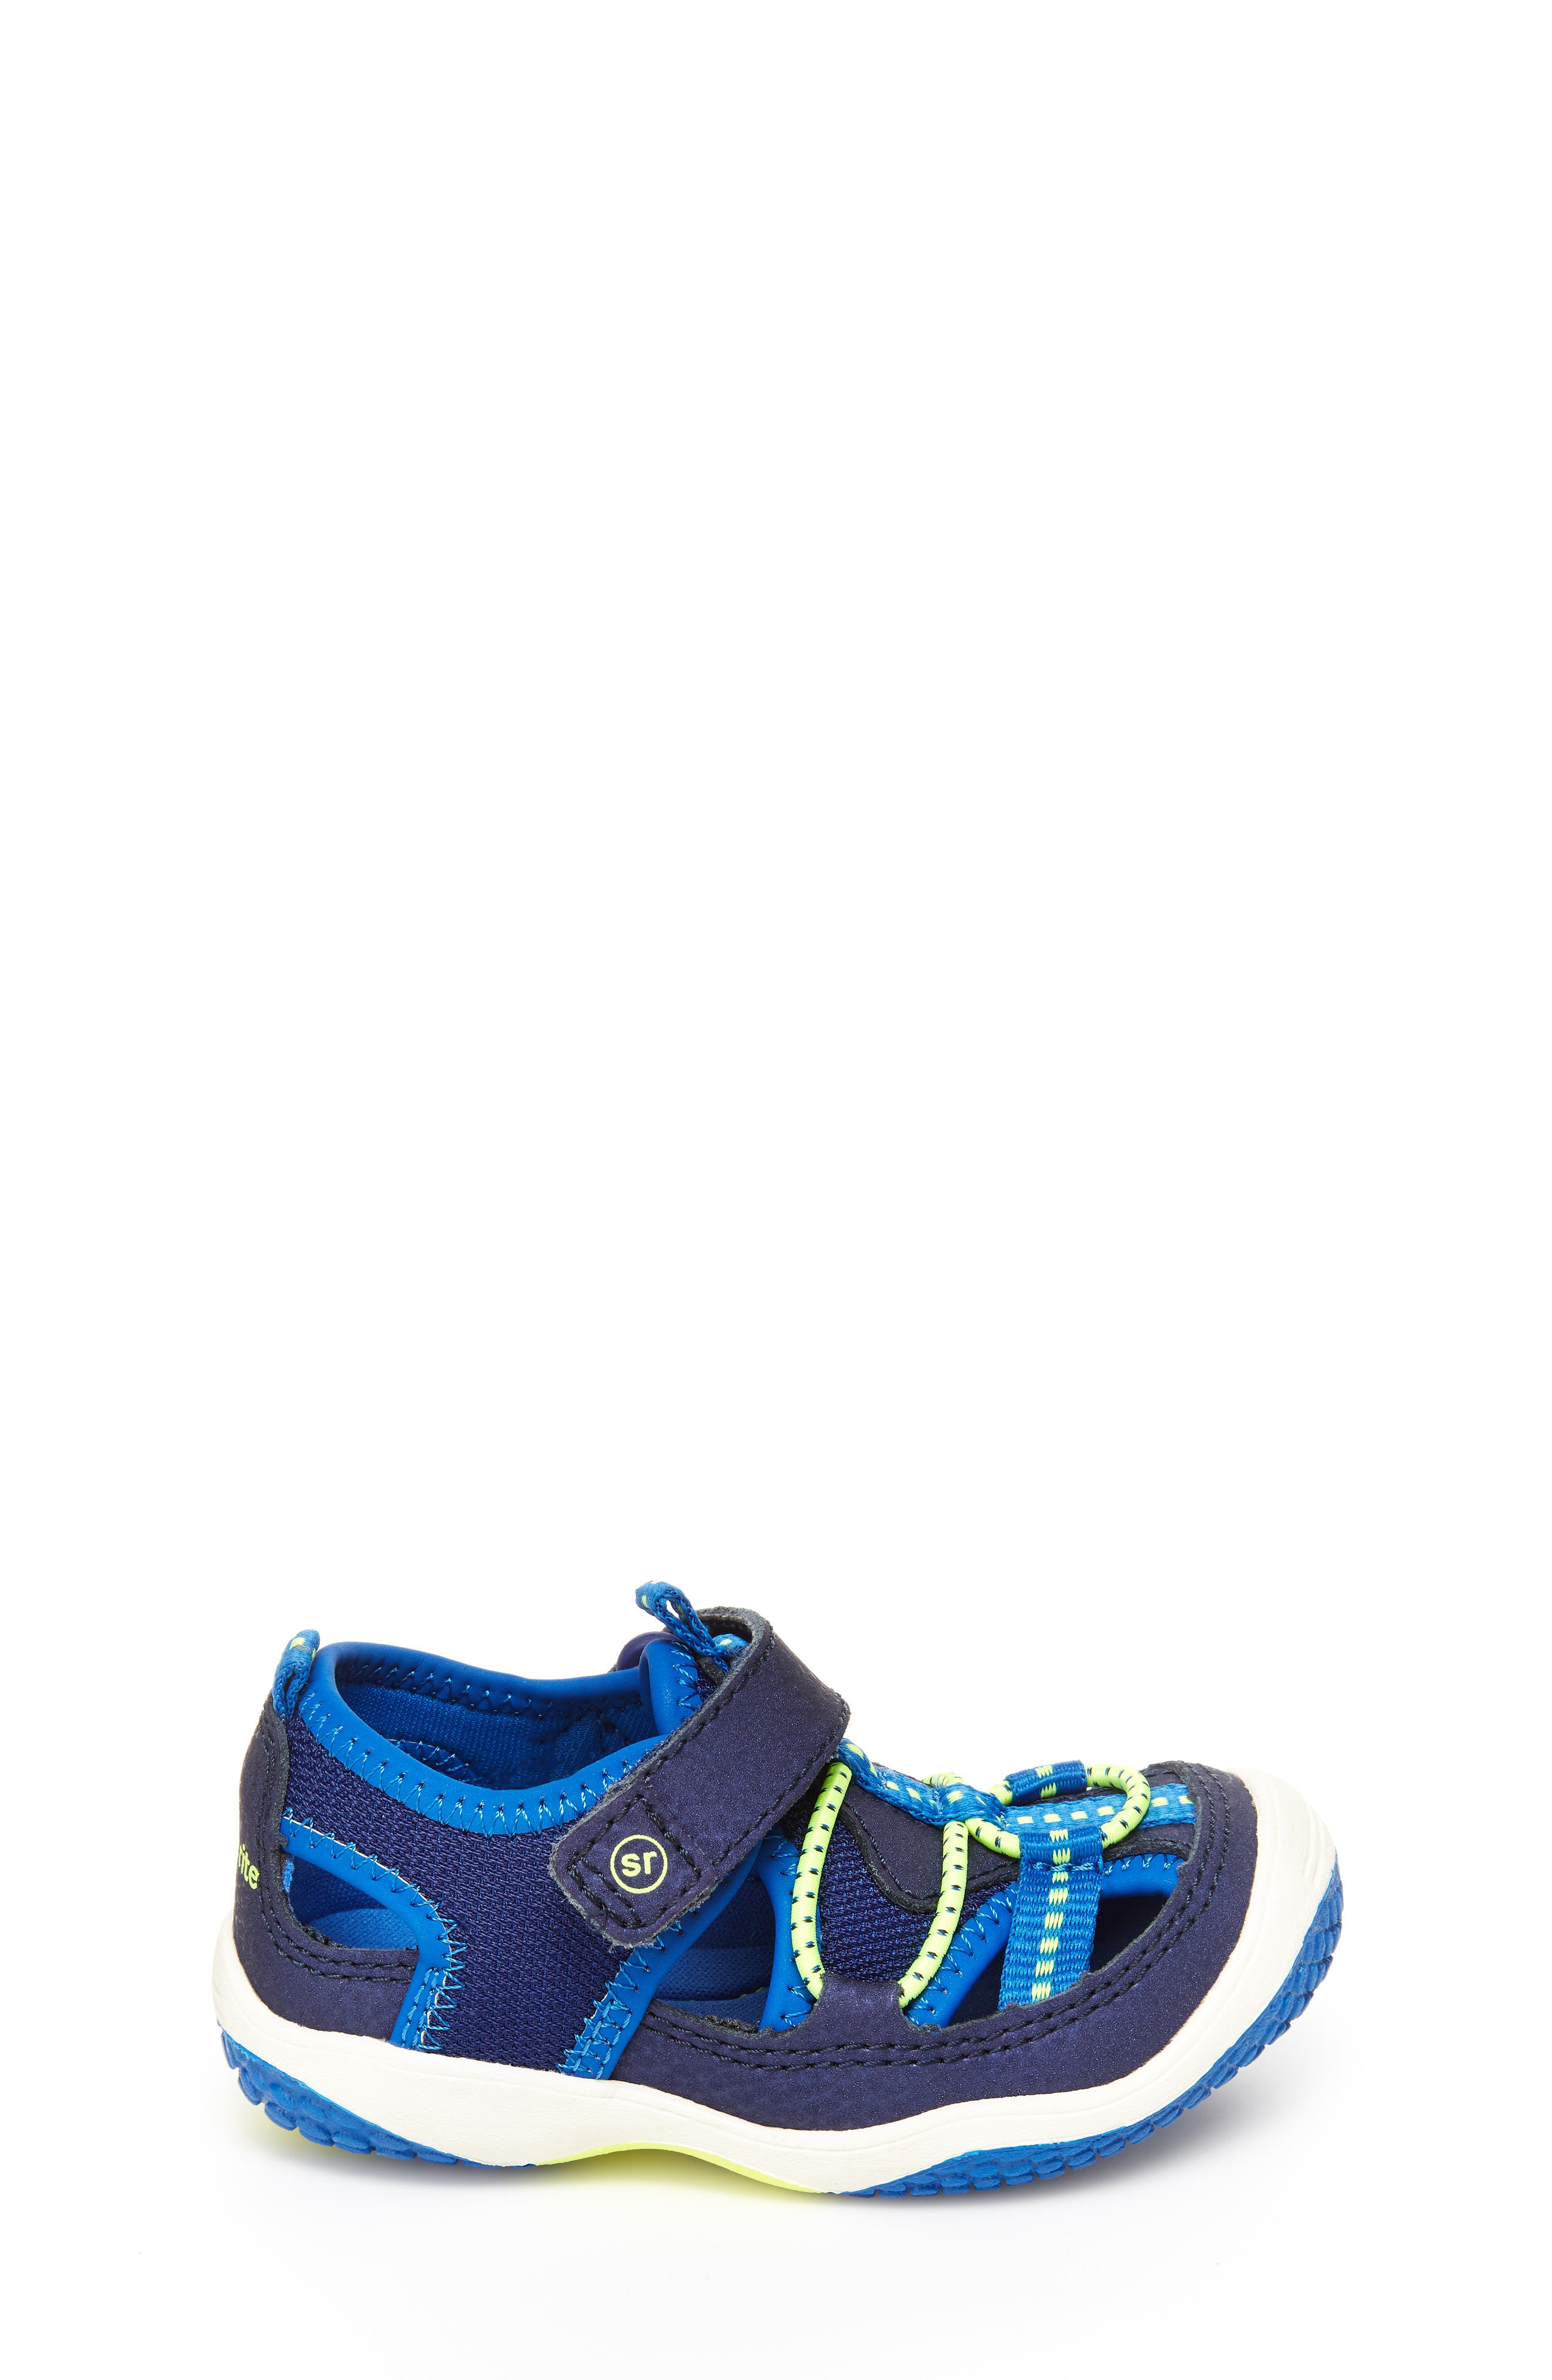 STRIDE RITE,                             Marina Water Sandal,                             Alternate thumbnail 2, color,                             ELECTRIC BLUE LEATHER/ TEXTILE